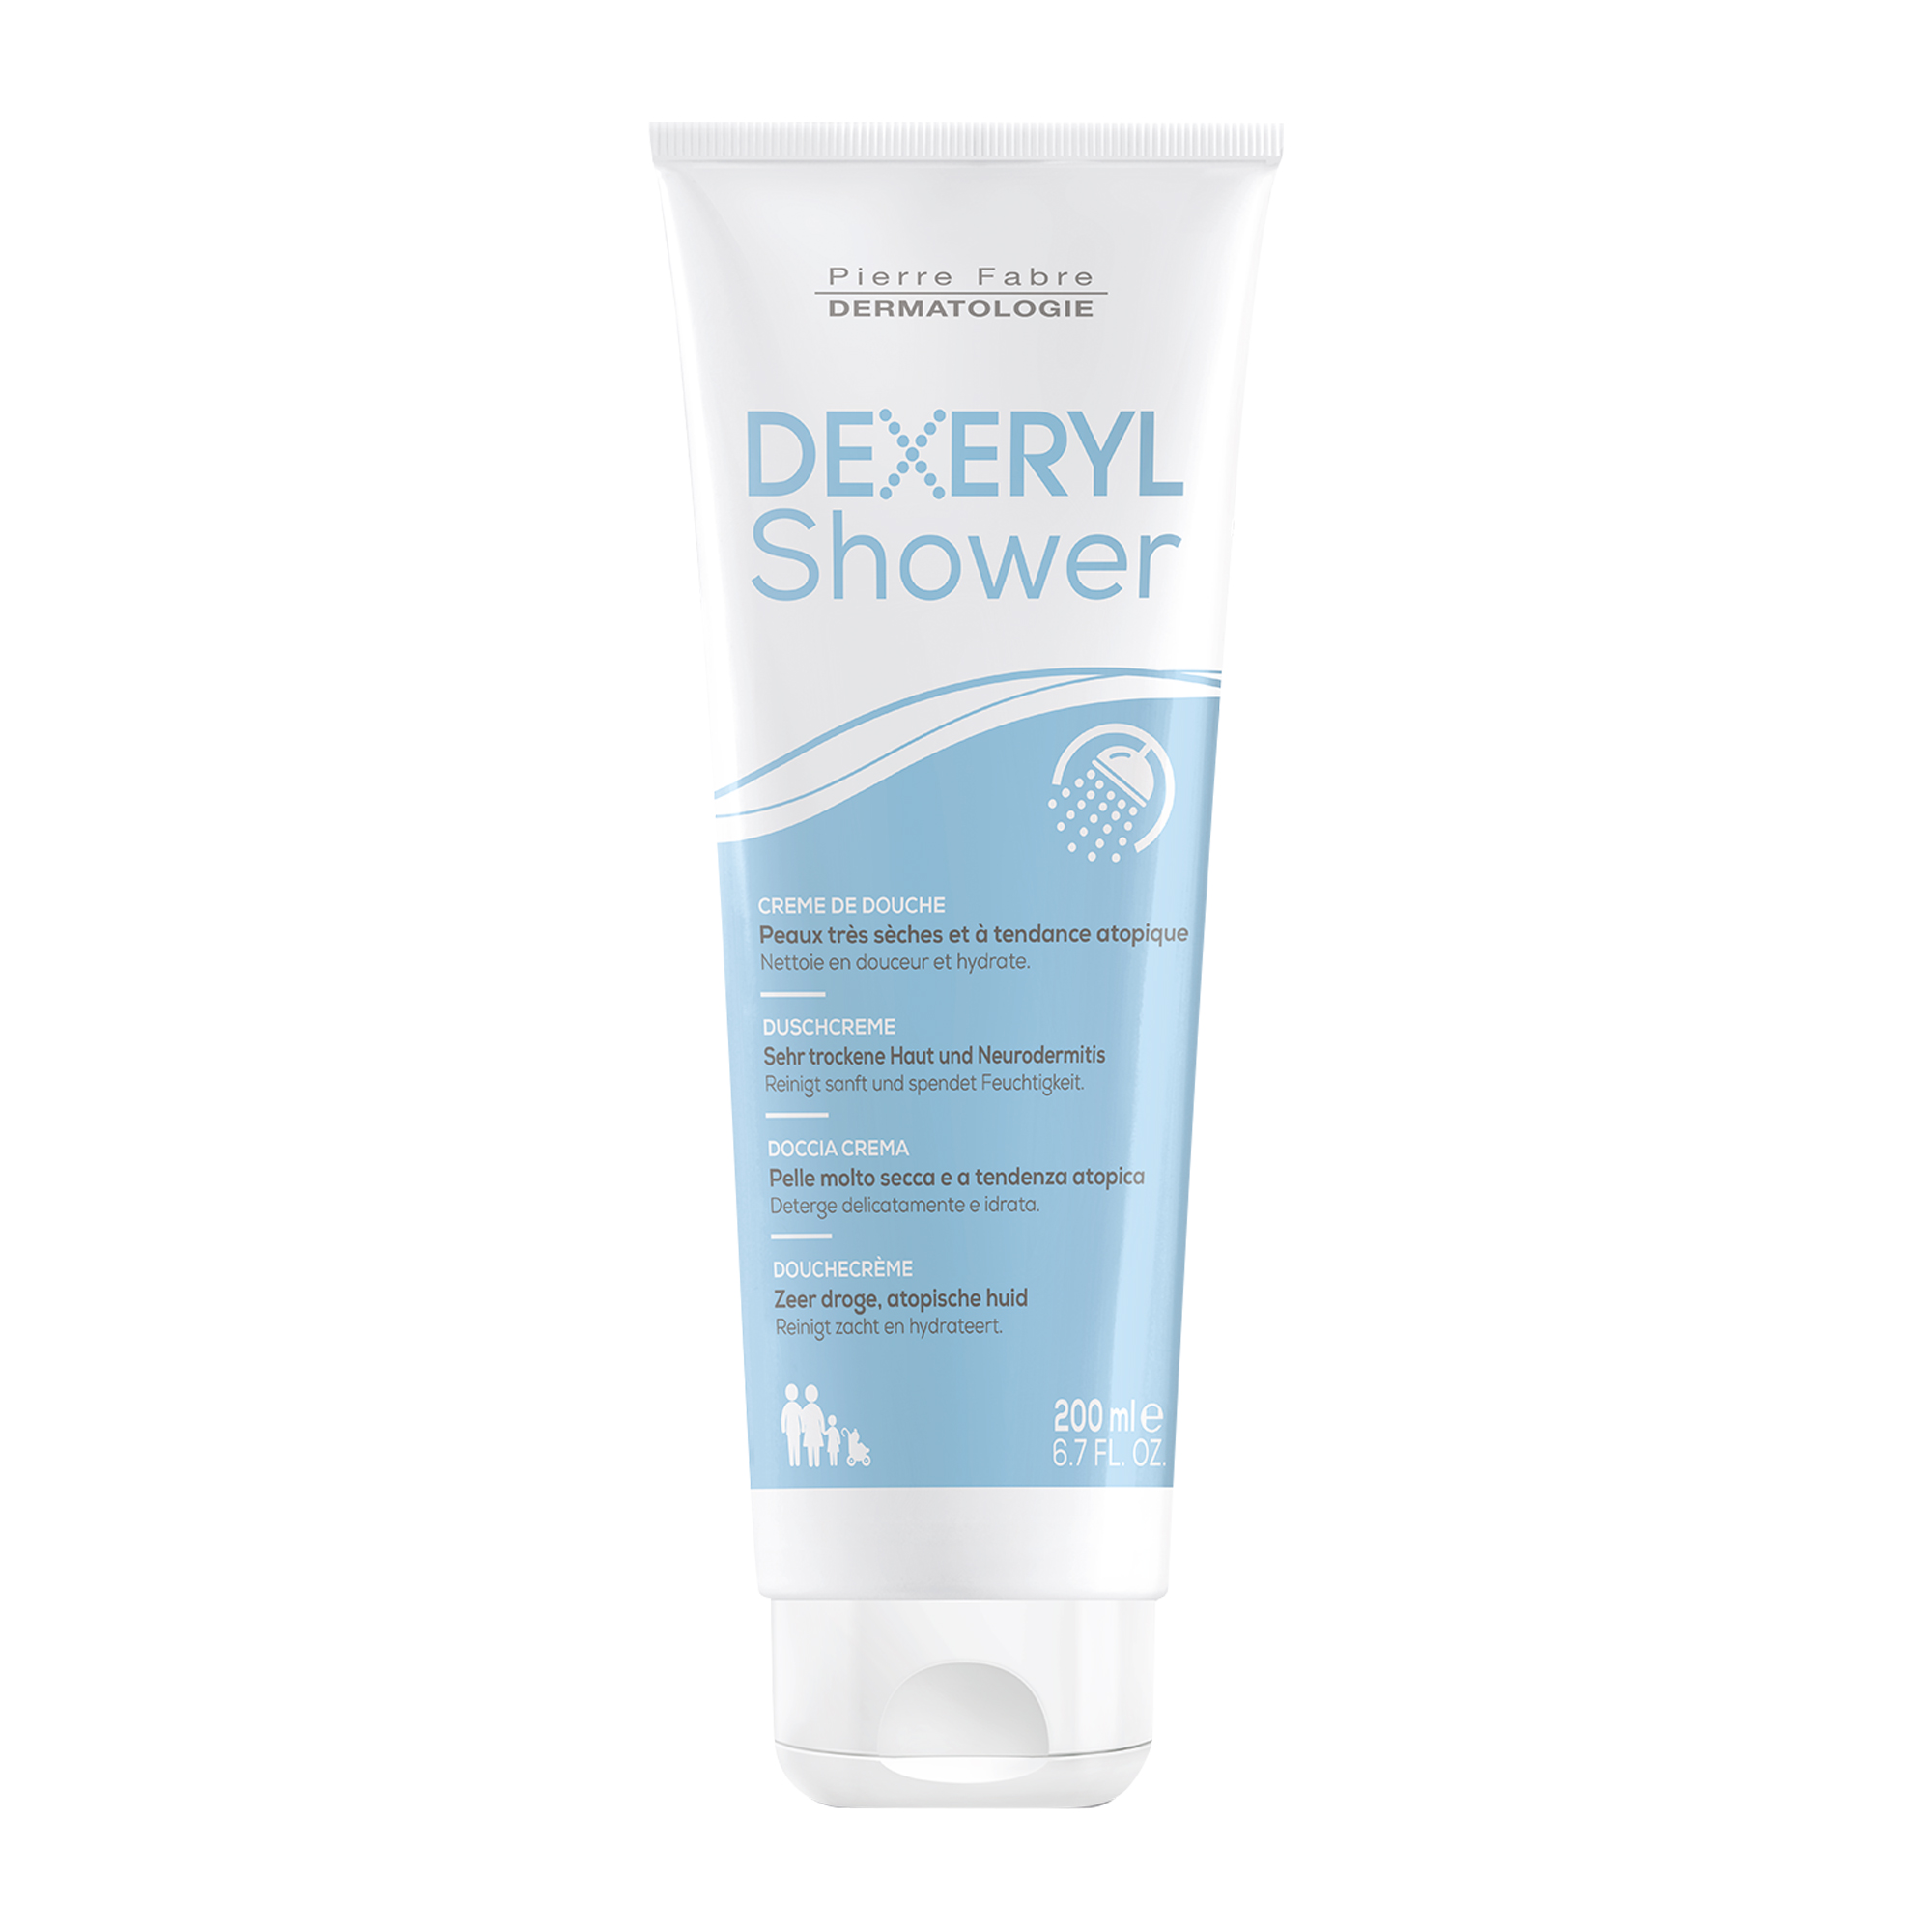 Dexeryl Shower Duschcreme